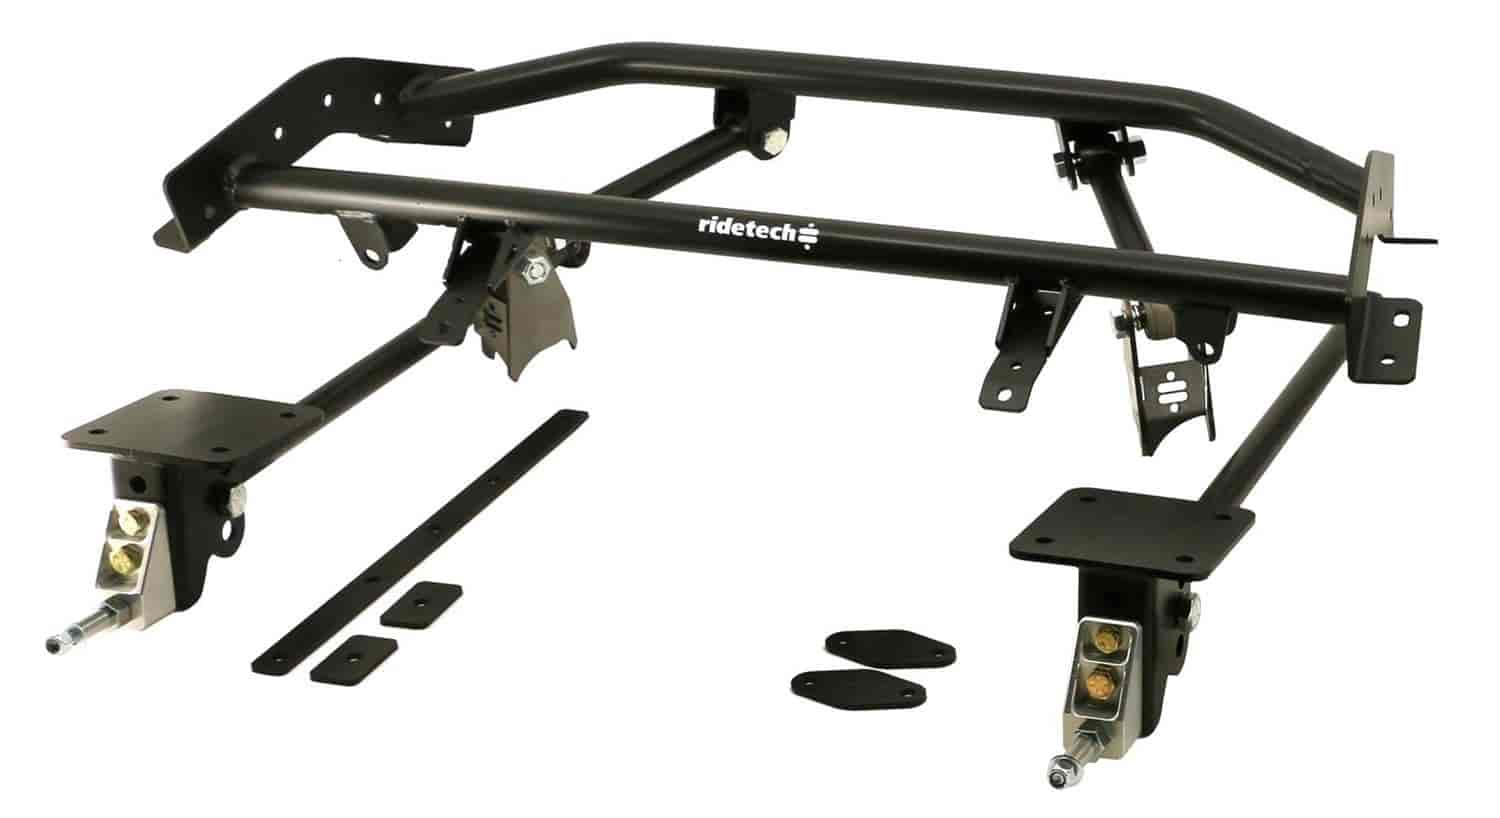 Ridetech 11167199 - Ridetech AirBar 4-Link Rear Suspension System